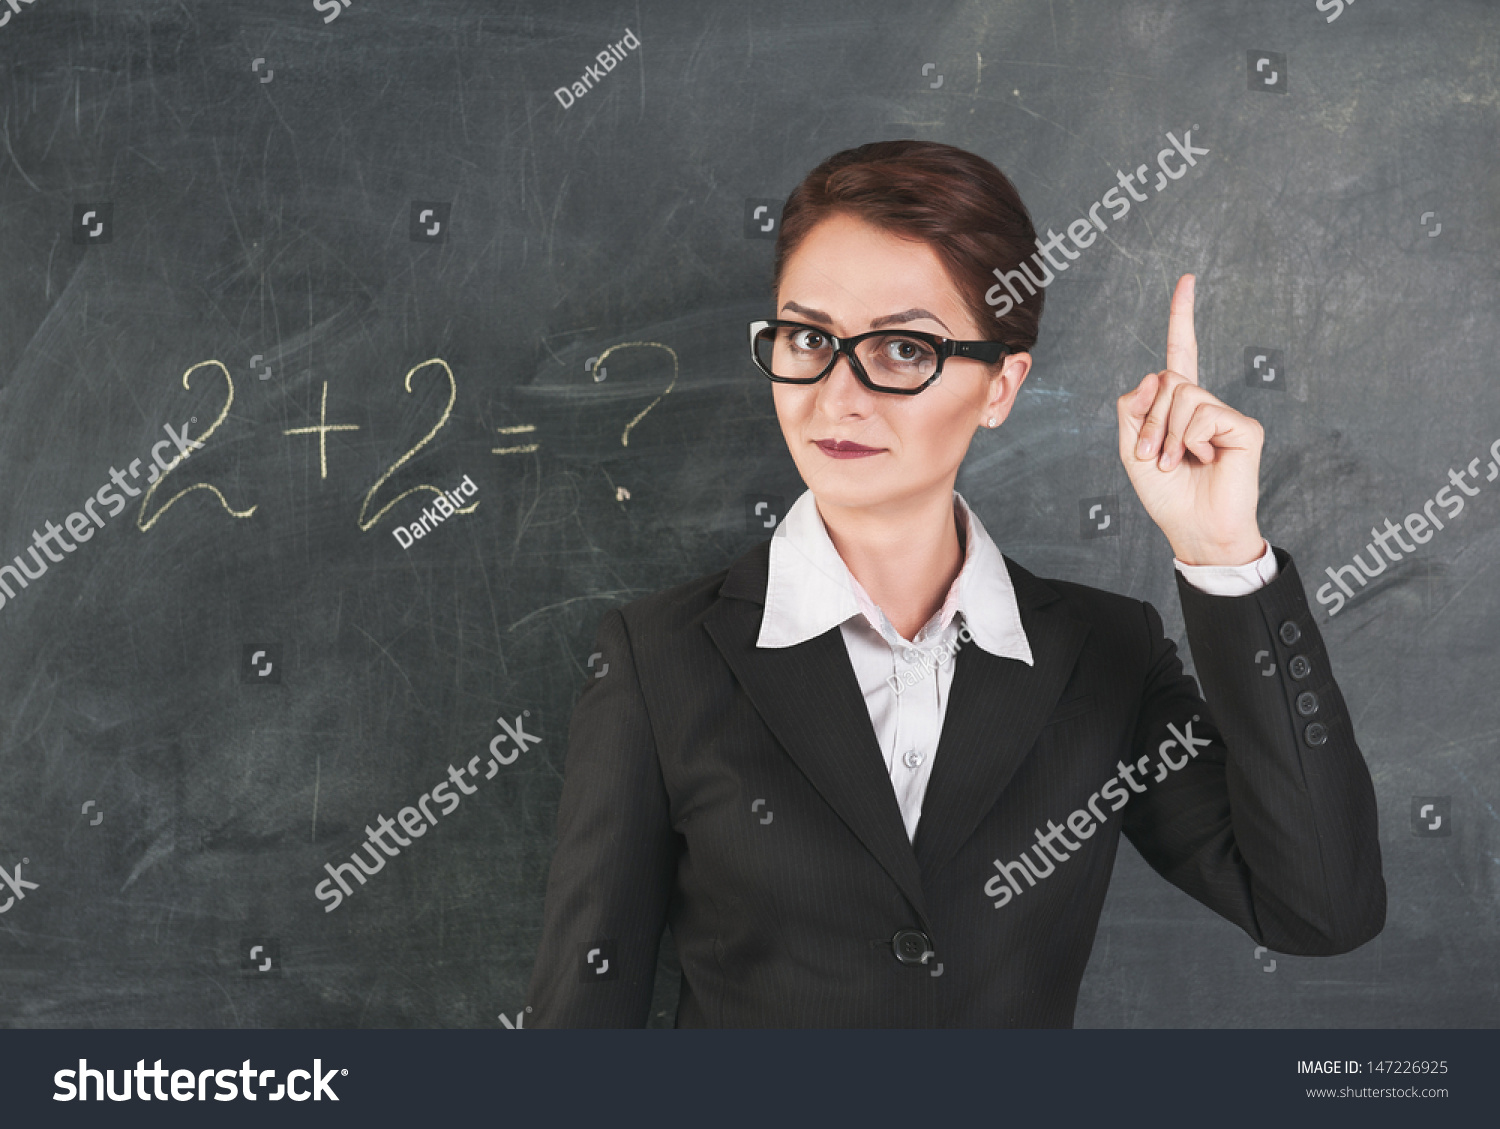 Teaching Maths Teacher Glasses Teaching Maths Showing Finger Stock Photo Edit